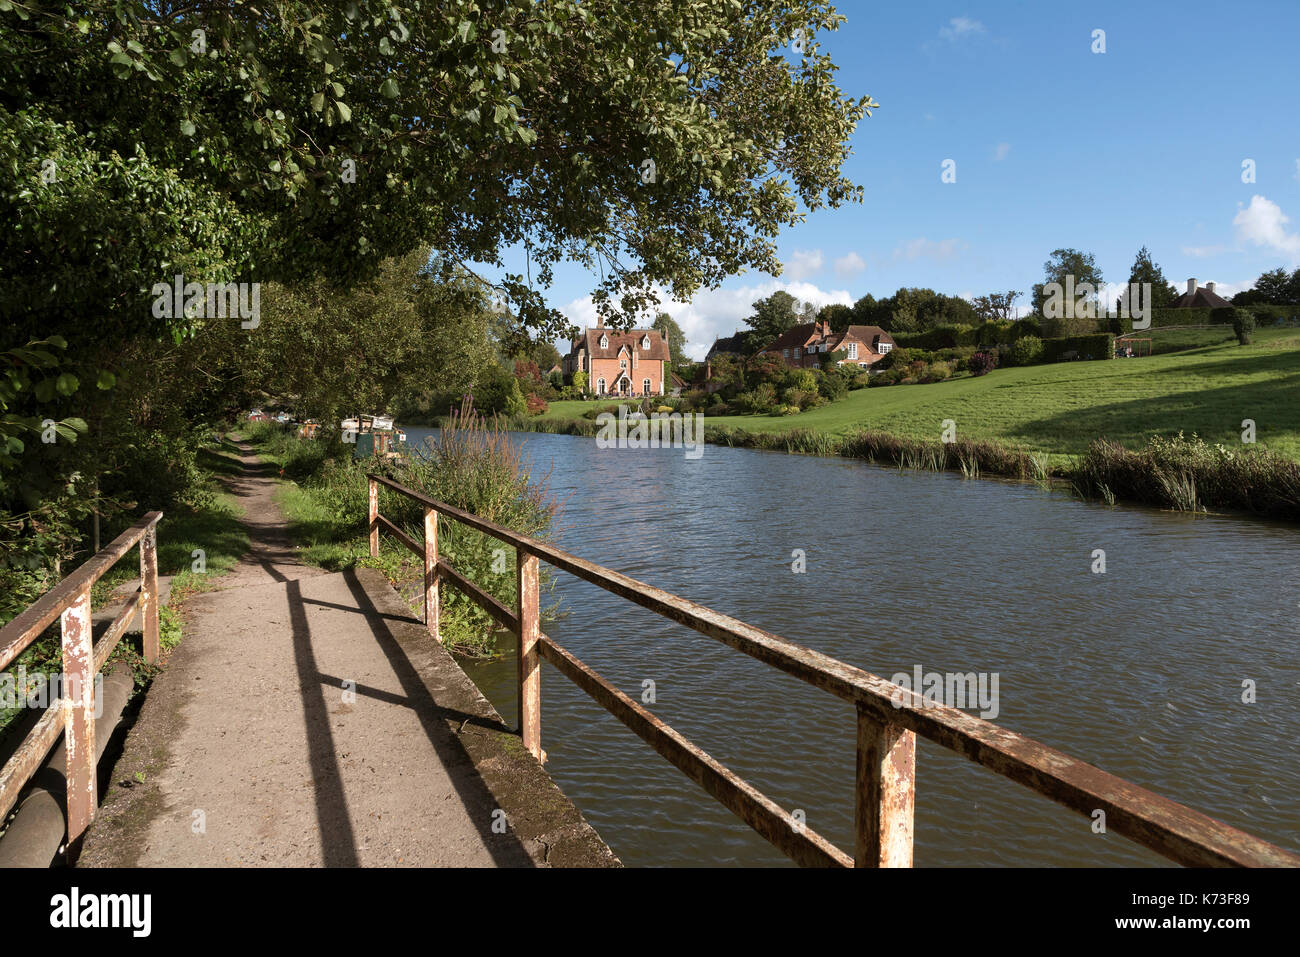 Kennet & Avon Canal at Kintbury Berkshire England UK. September 2017. Footbridge and towpath alongside the canal with large property in the background - Stock Image